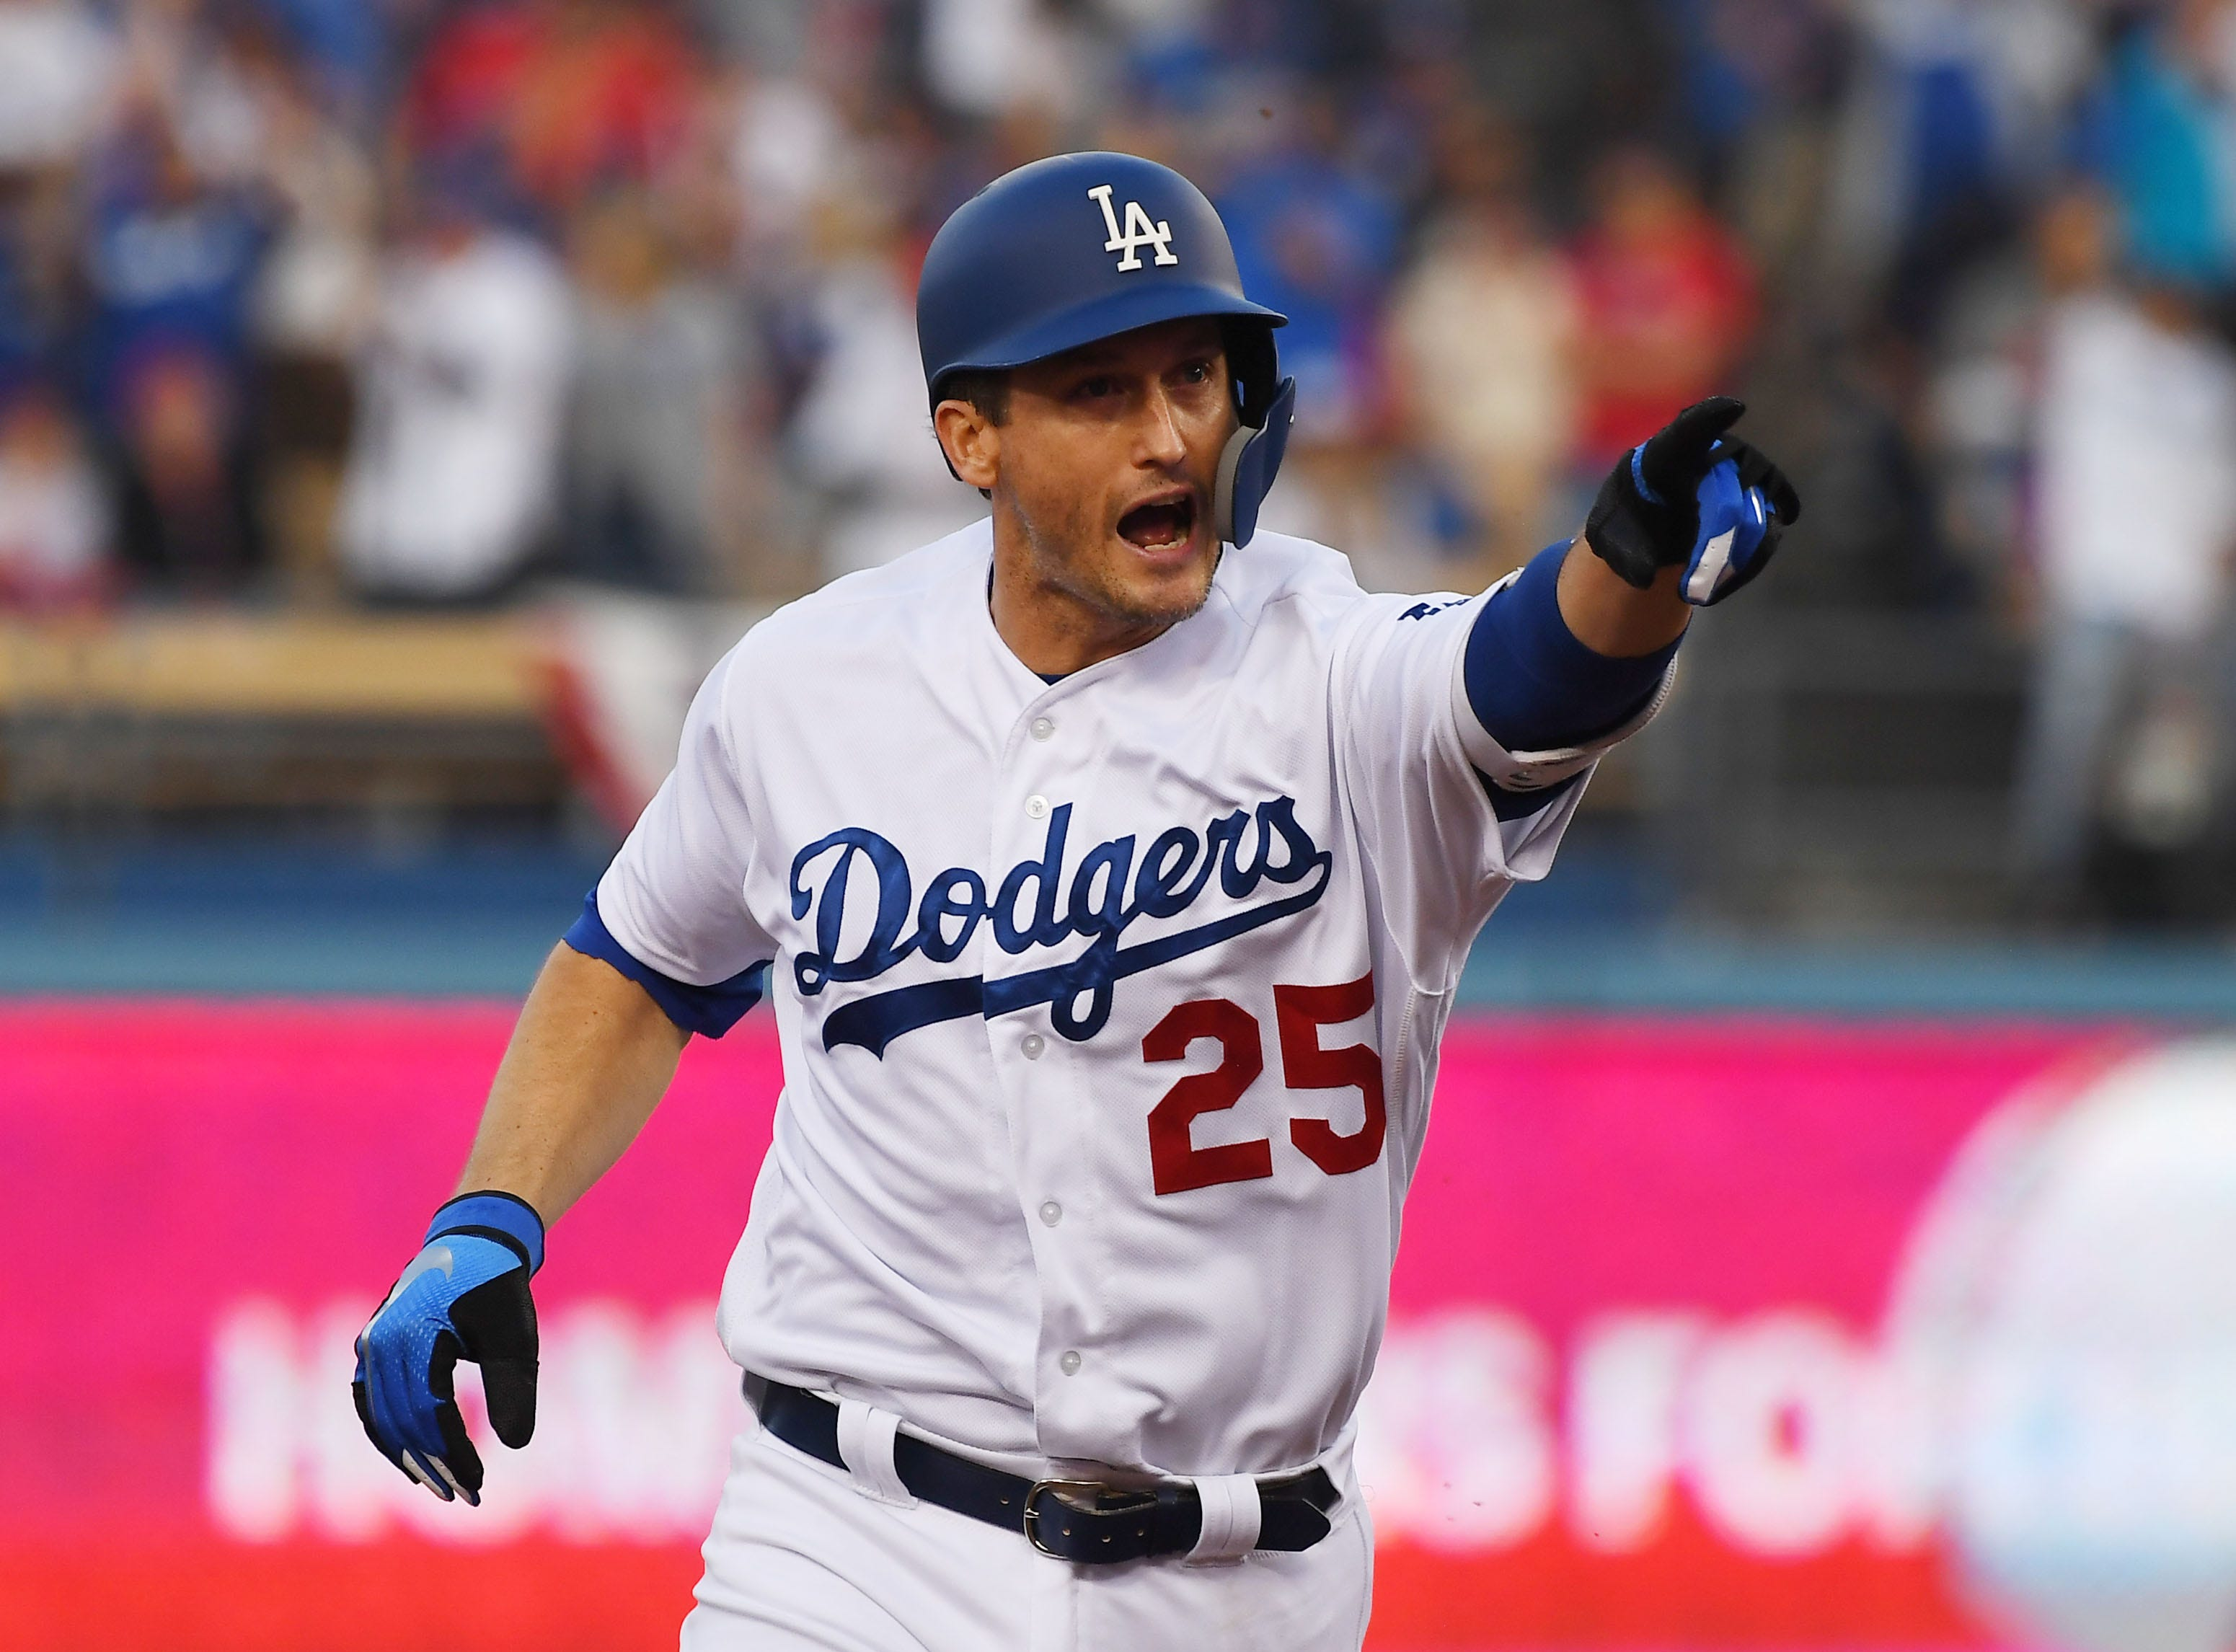 Game 5 at Dodger Stadium: David Freese celebrates after hitting a solo home run in the first inning.